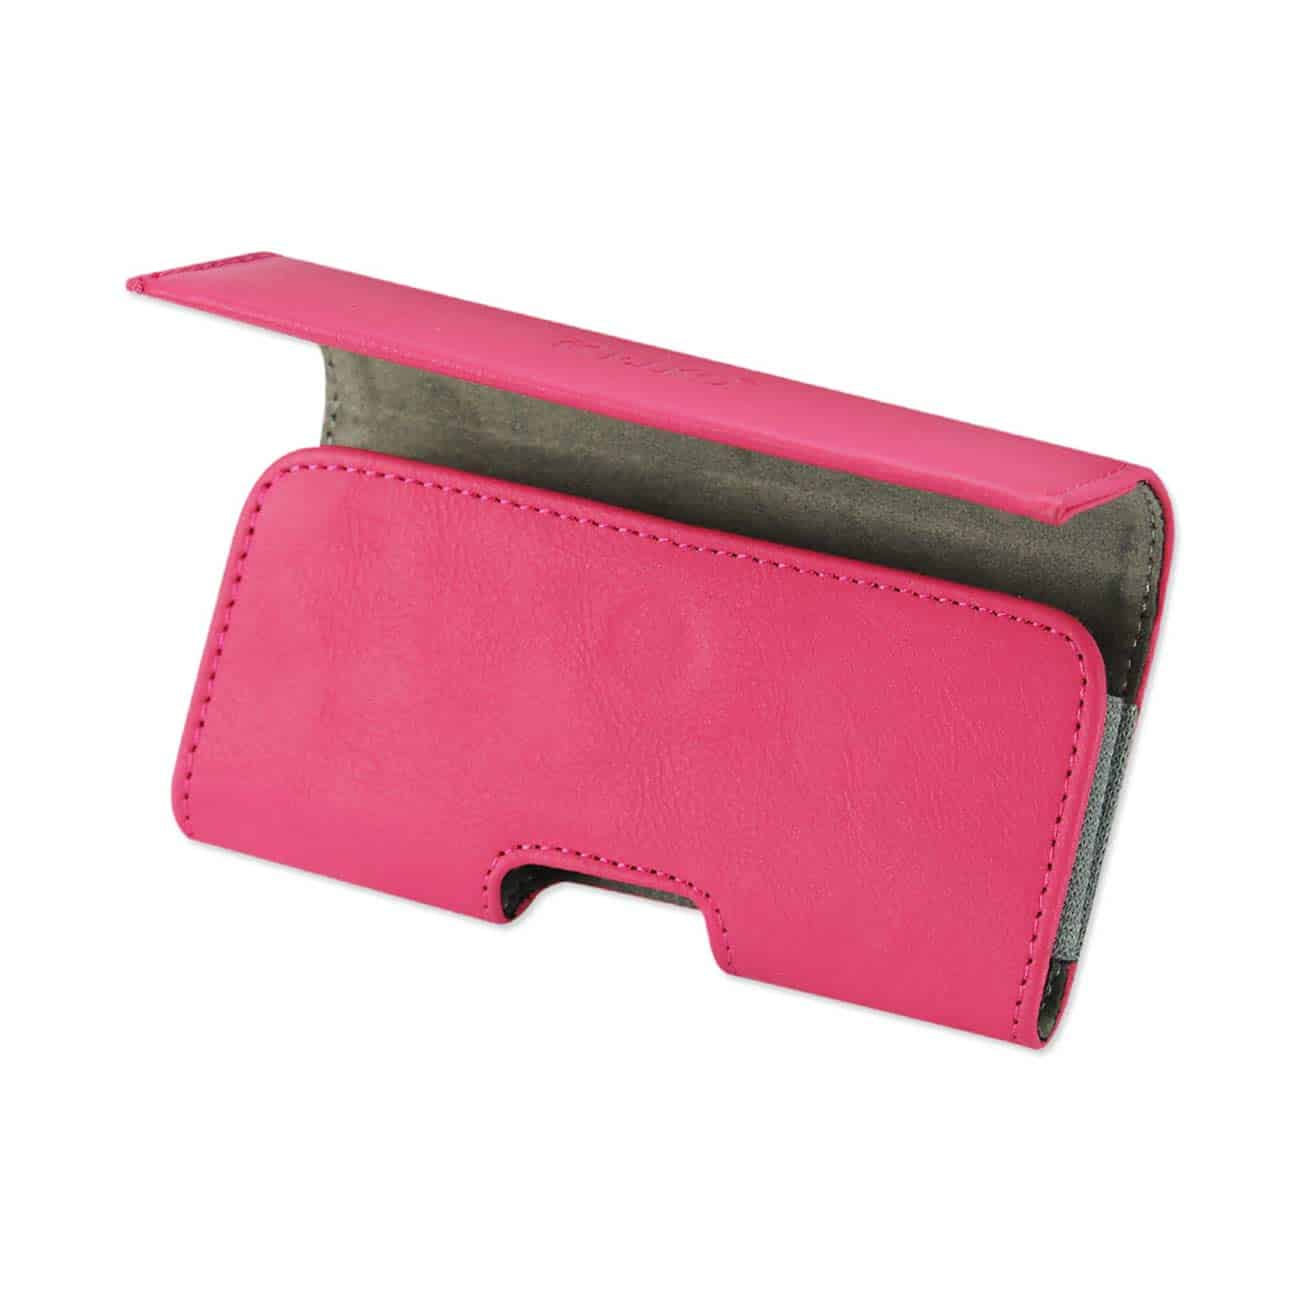 HORIZONTAL POUCH IPHONE5 PLUS HOT PINK